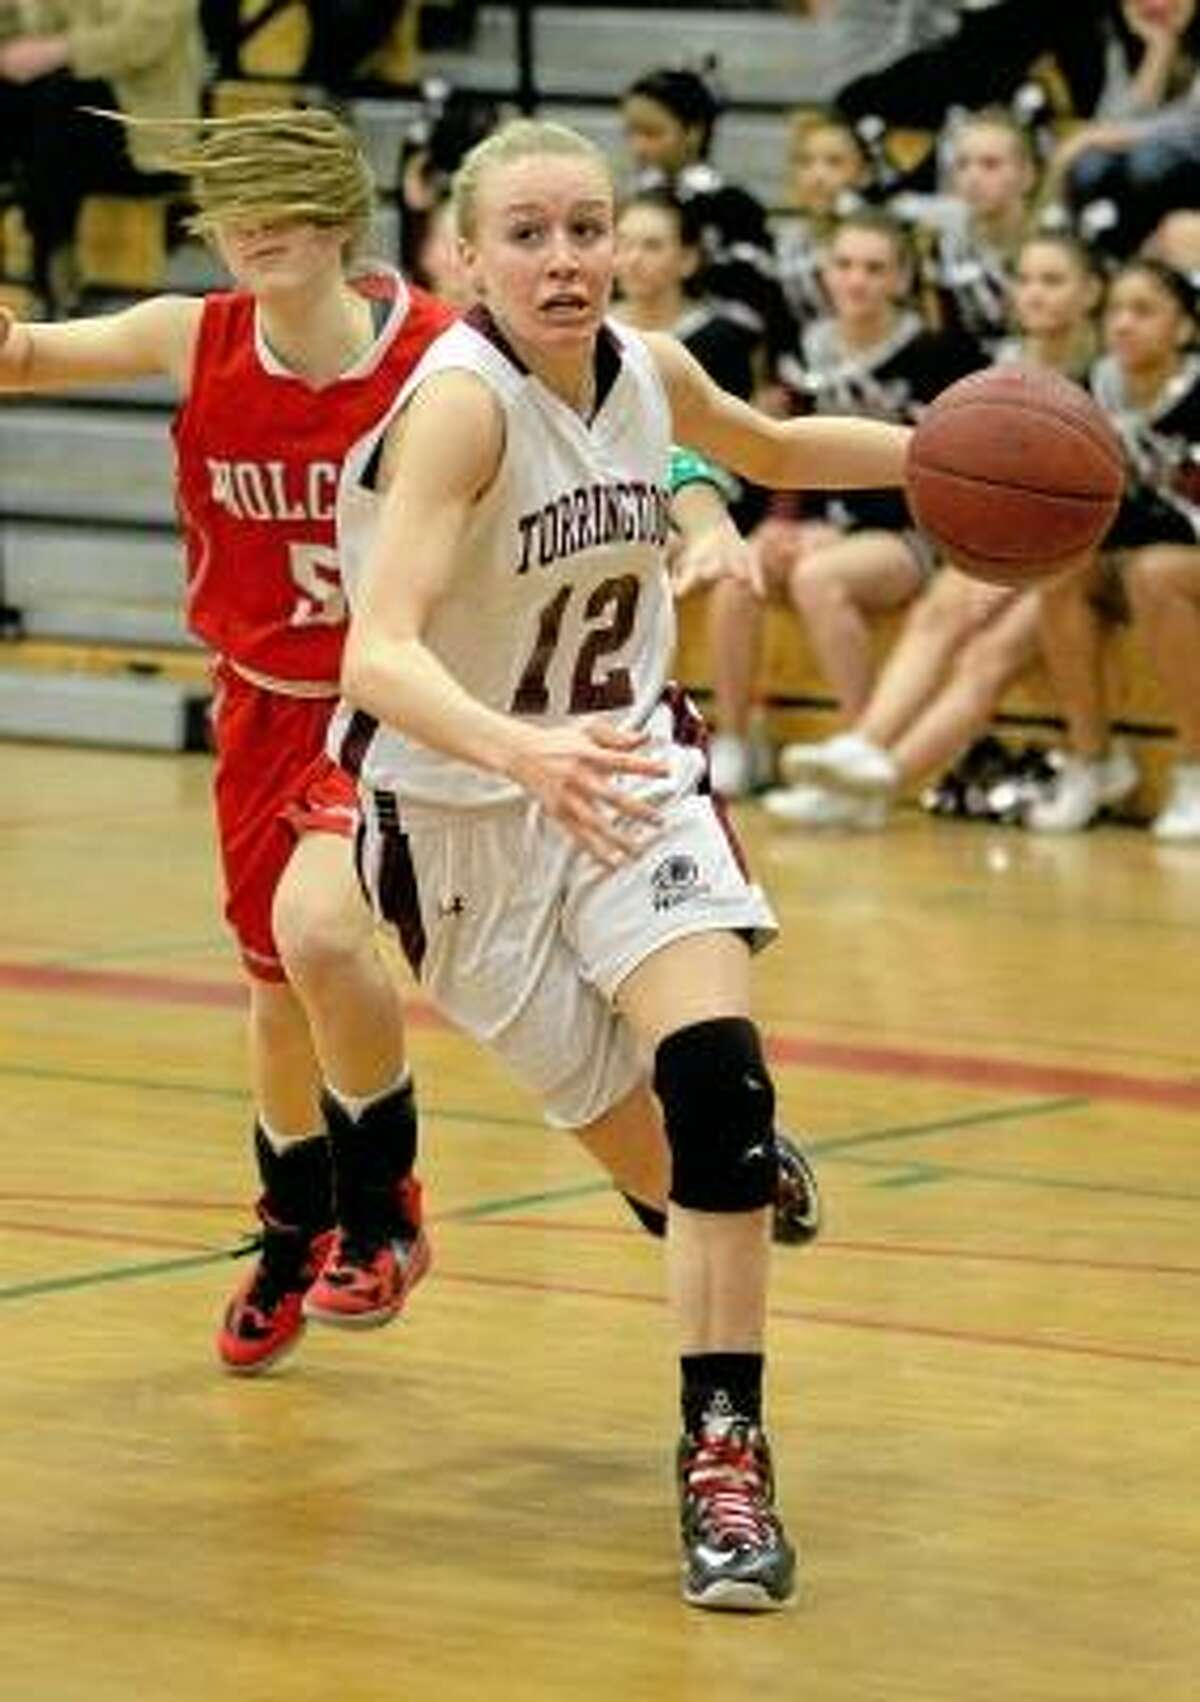 Paige Middleton (12) of the Lady Raiders drives to the hoop in her team's win over Wolcott Friday night. Photo by Marianne Killackey/Special to Register Citizen